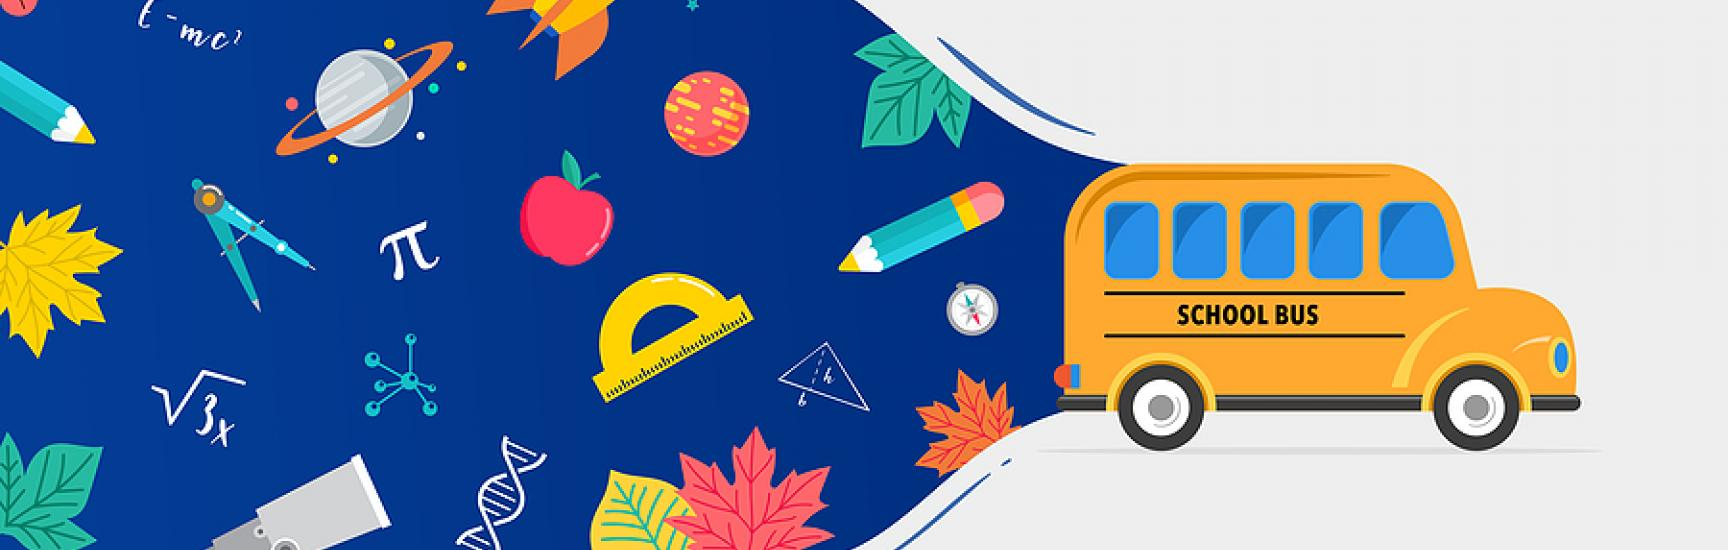 school bus driving with space background